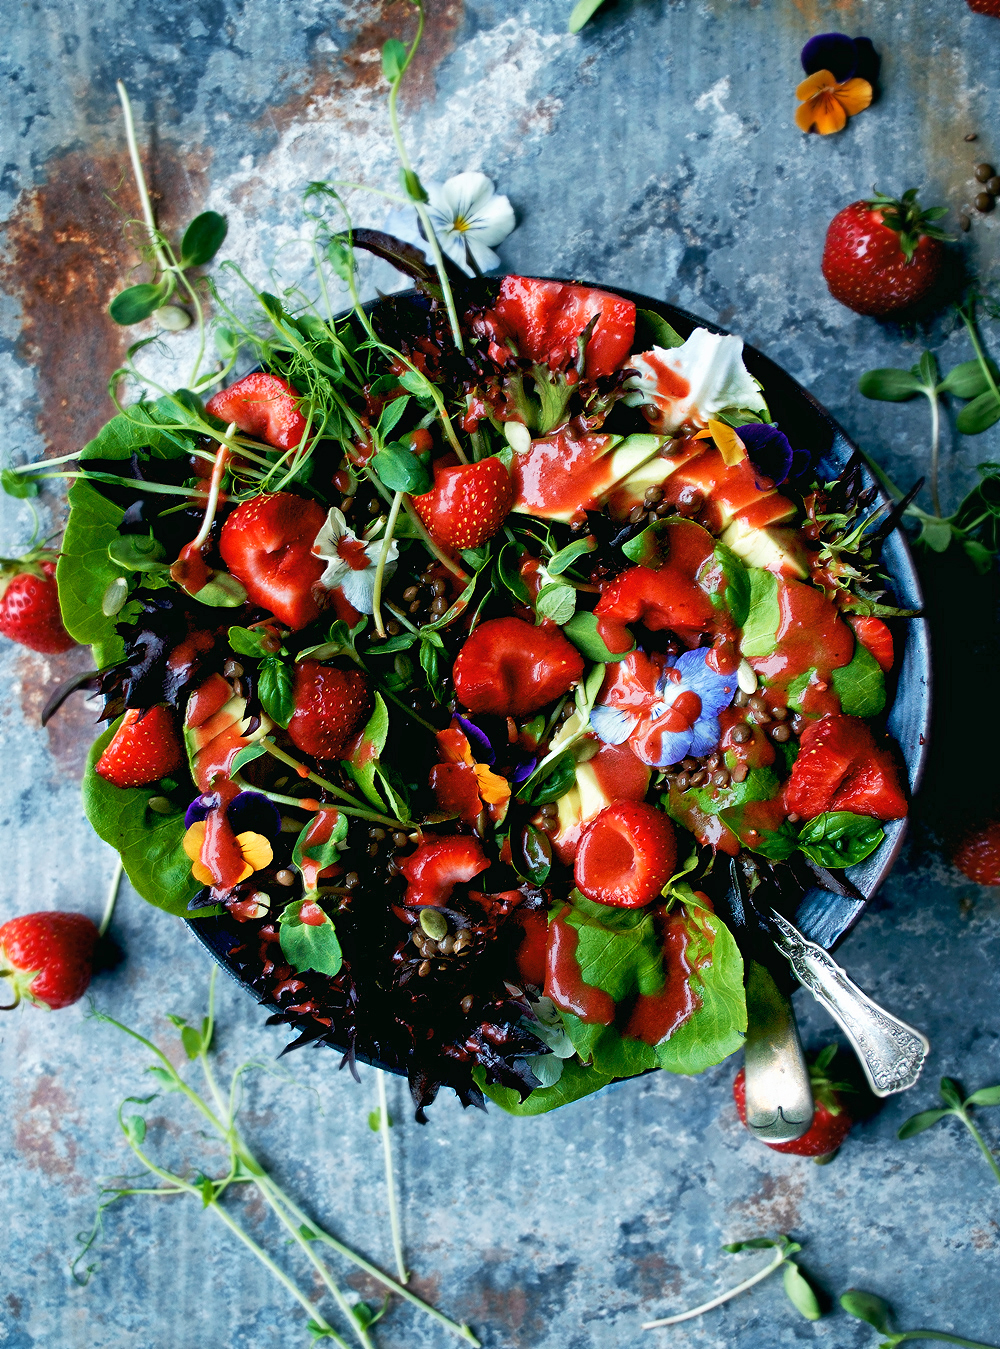 This vegan strawberry salad is packed with the best of the season - spring berries, the first greens, herbs, and flowers. It's spring in a bowl, with lentils and a pretty strawberry vinaigrette.